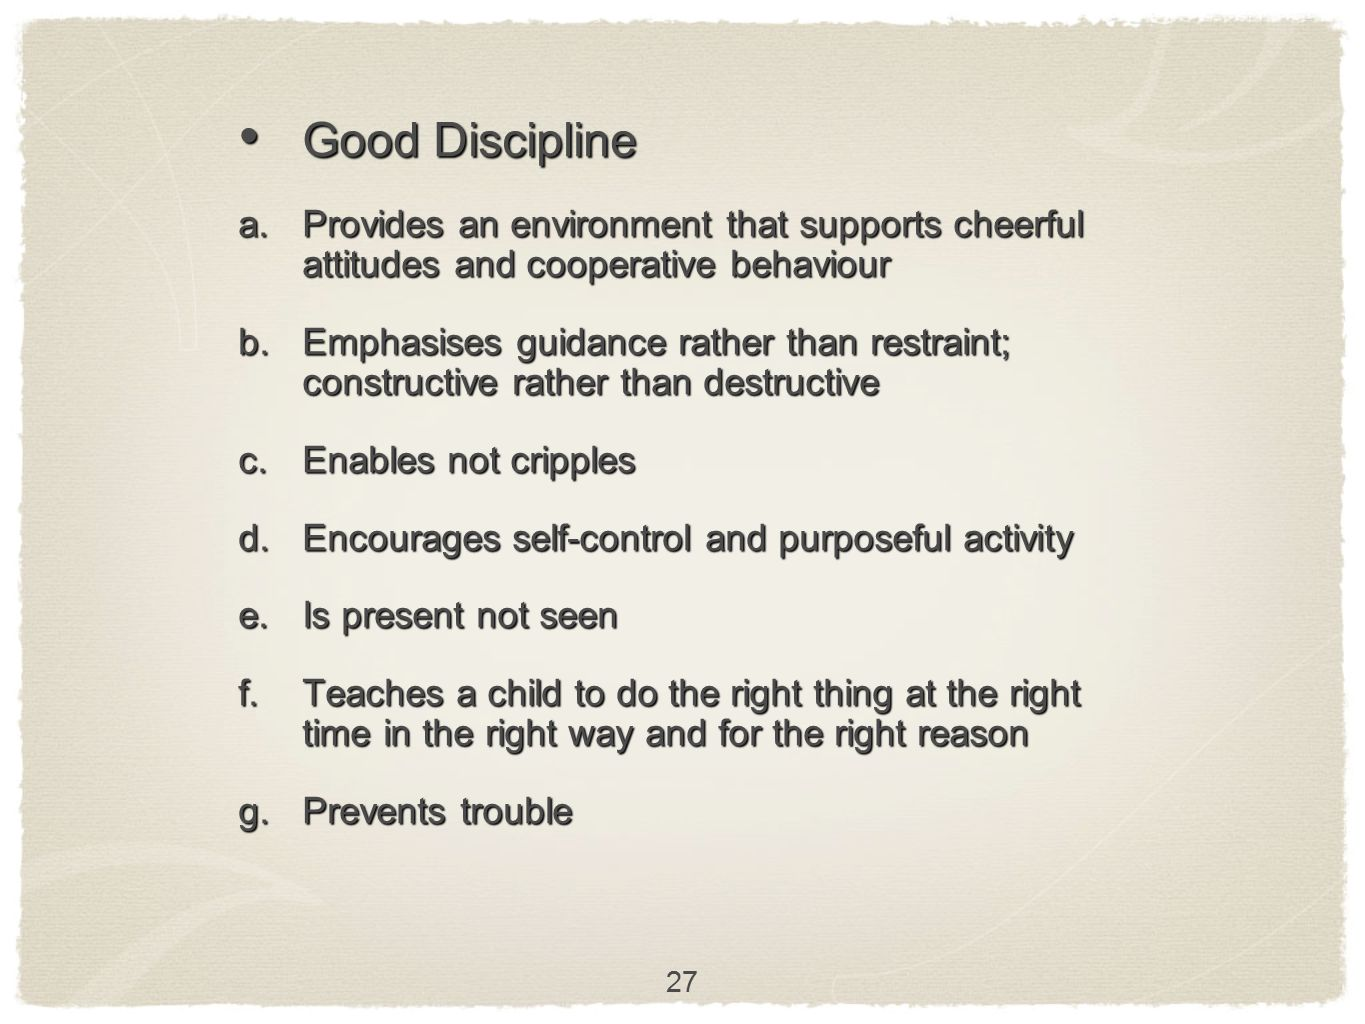 Good Discipline Provides an environment that supports cheerful attitudes and cooperative behaviour.